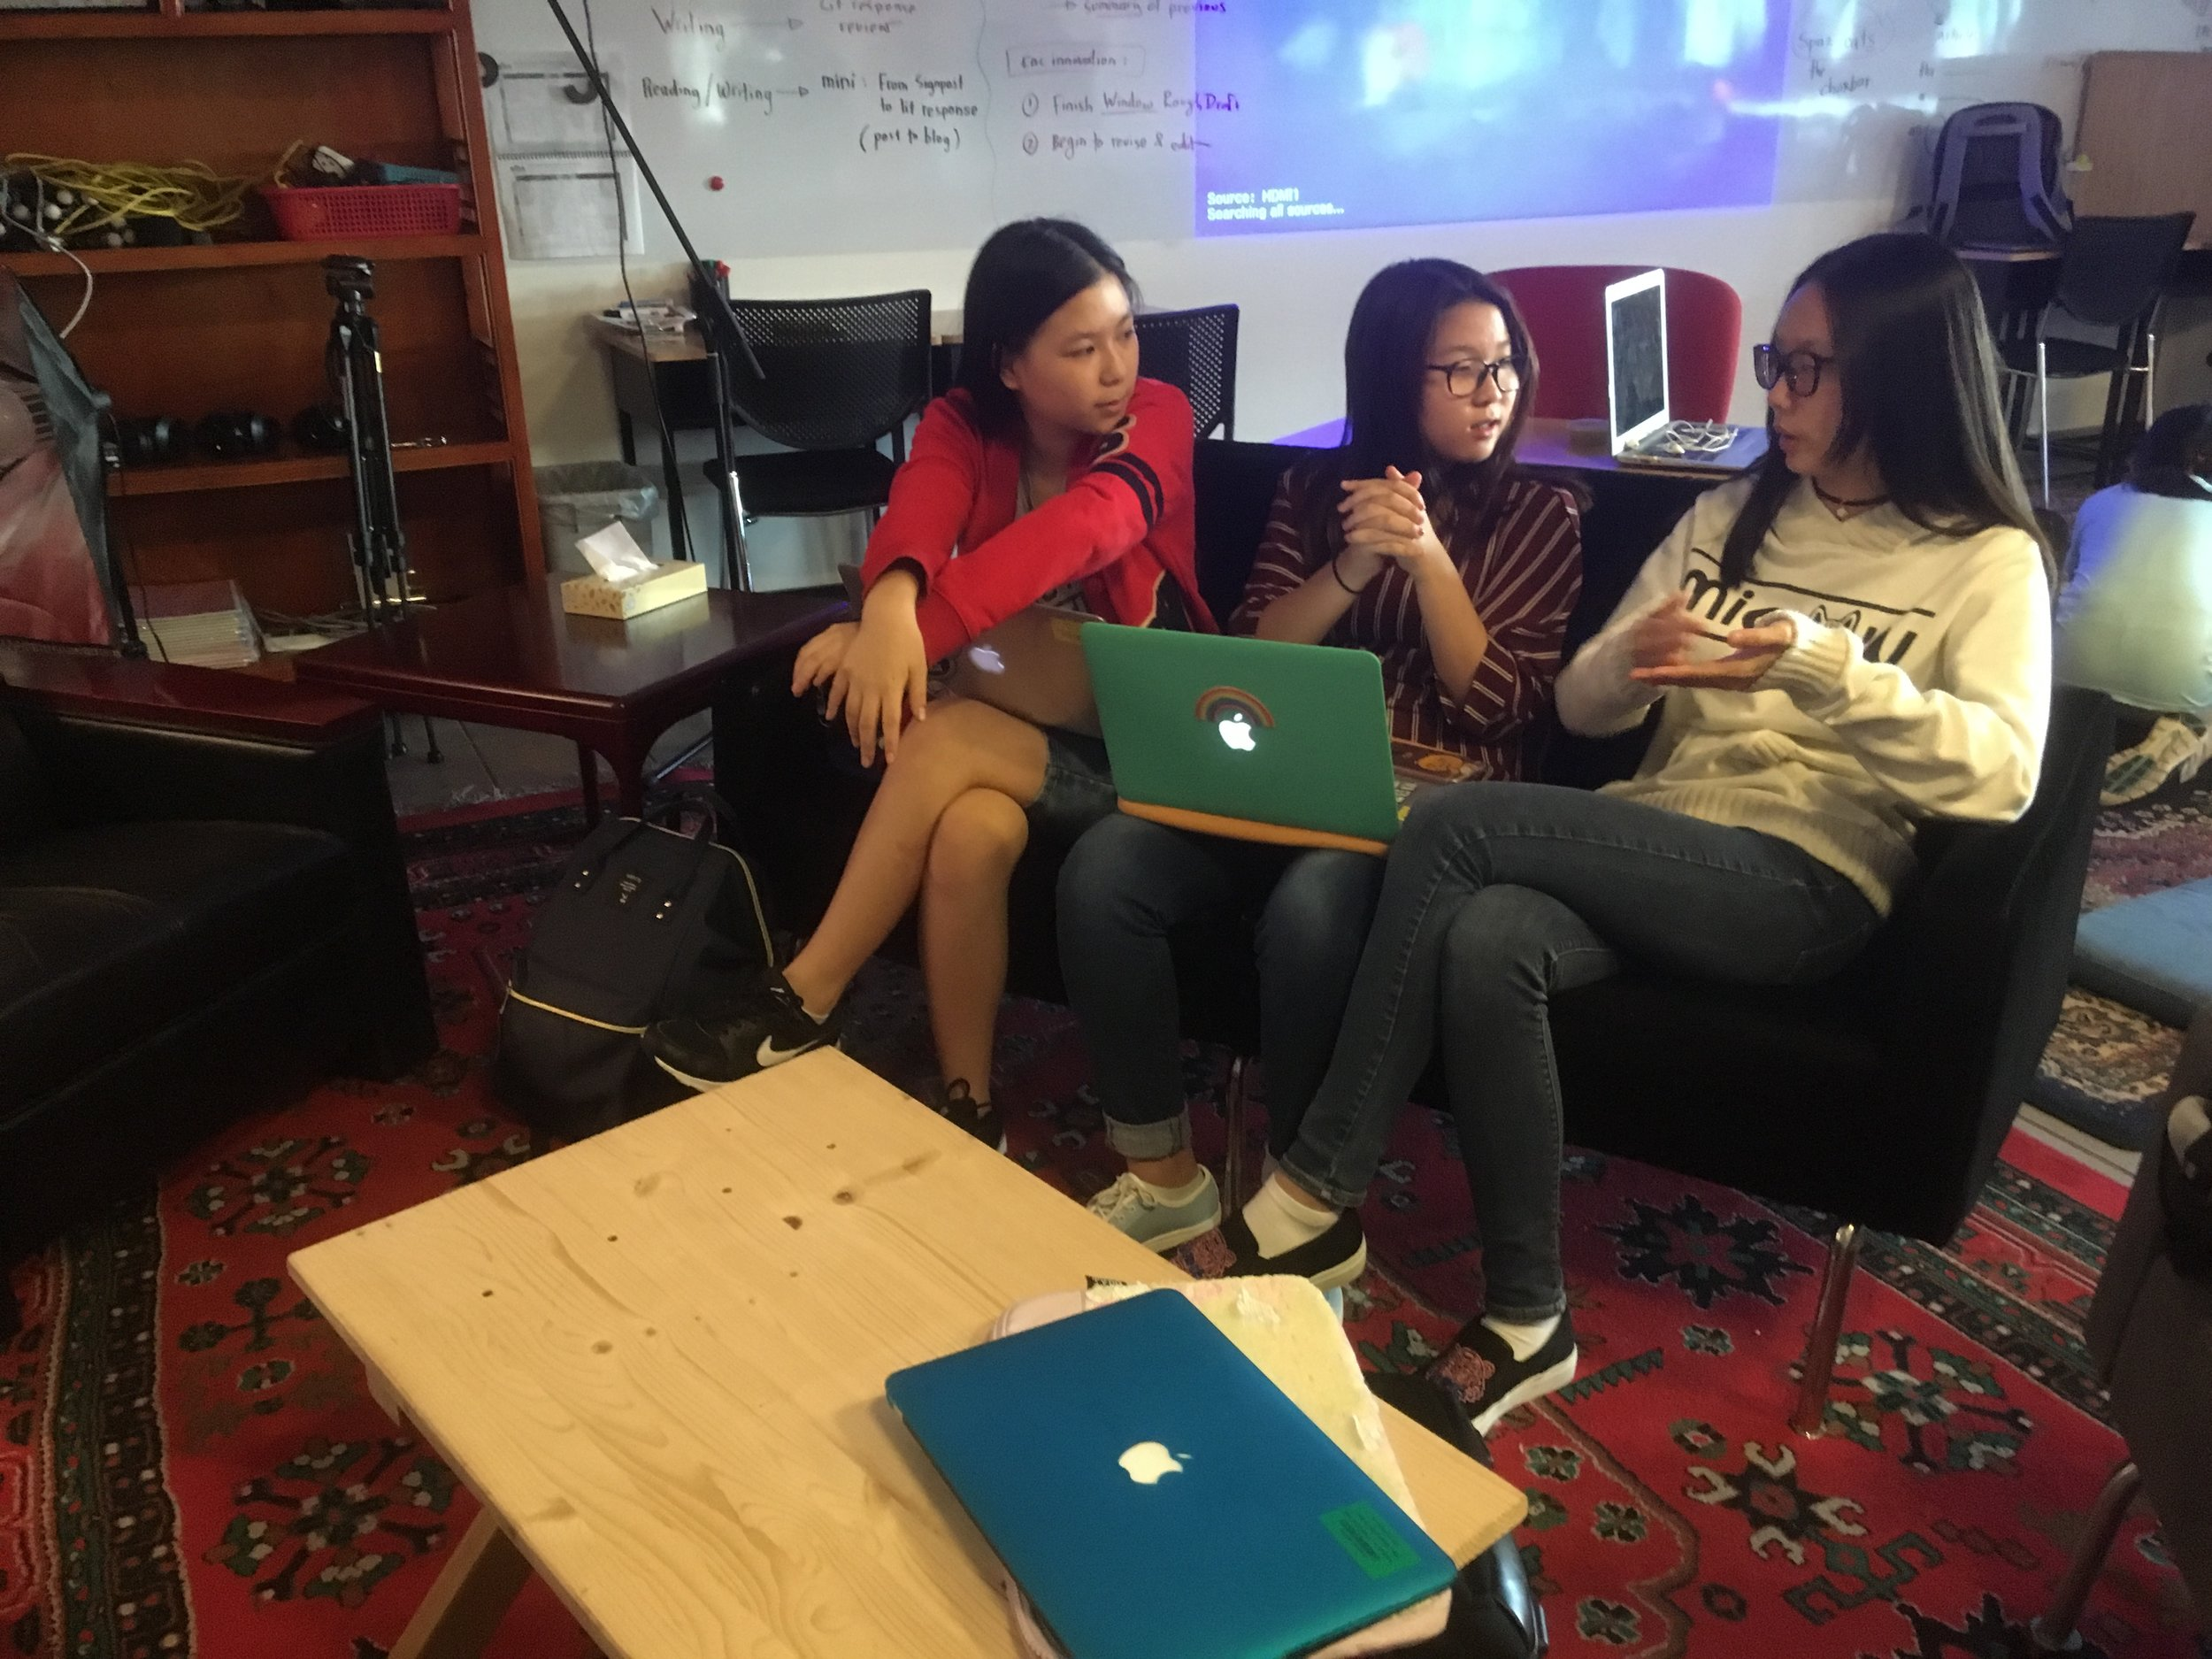 High School reporters and producers Judy P, Sally K, and Lilian H discuss their new project in the FPR workshop space.